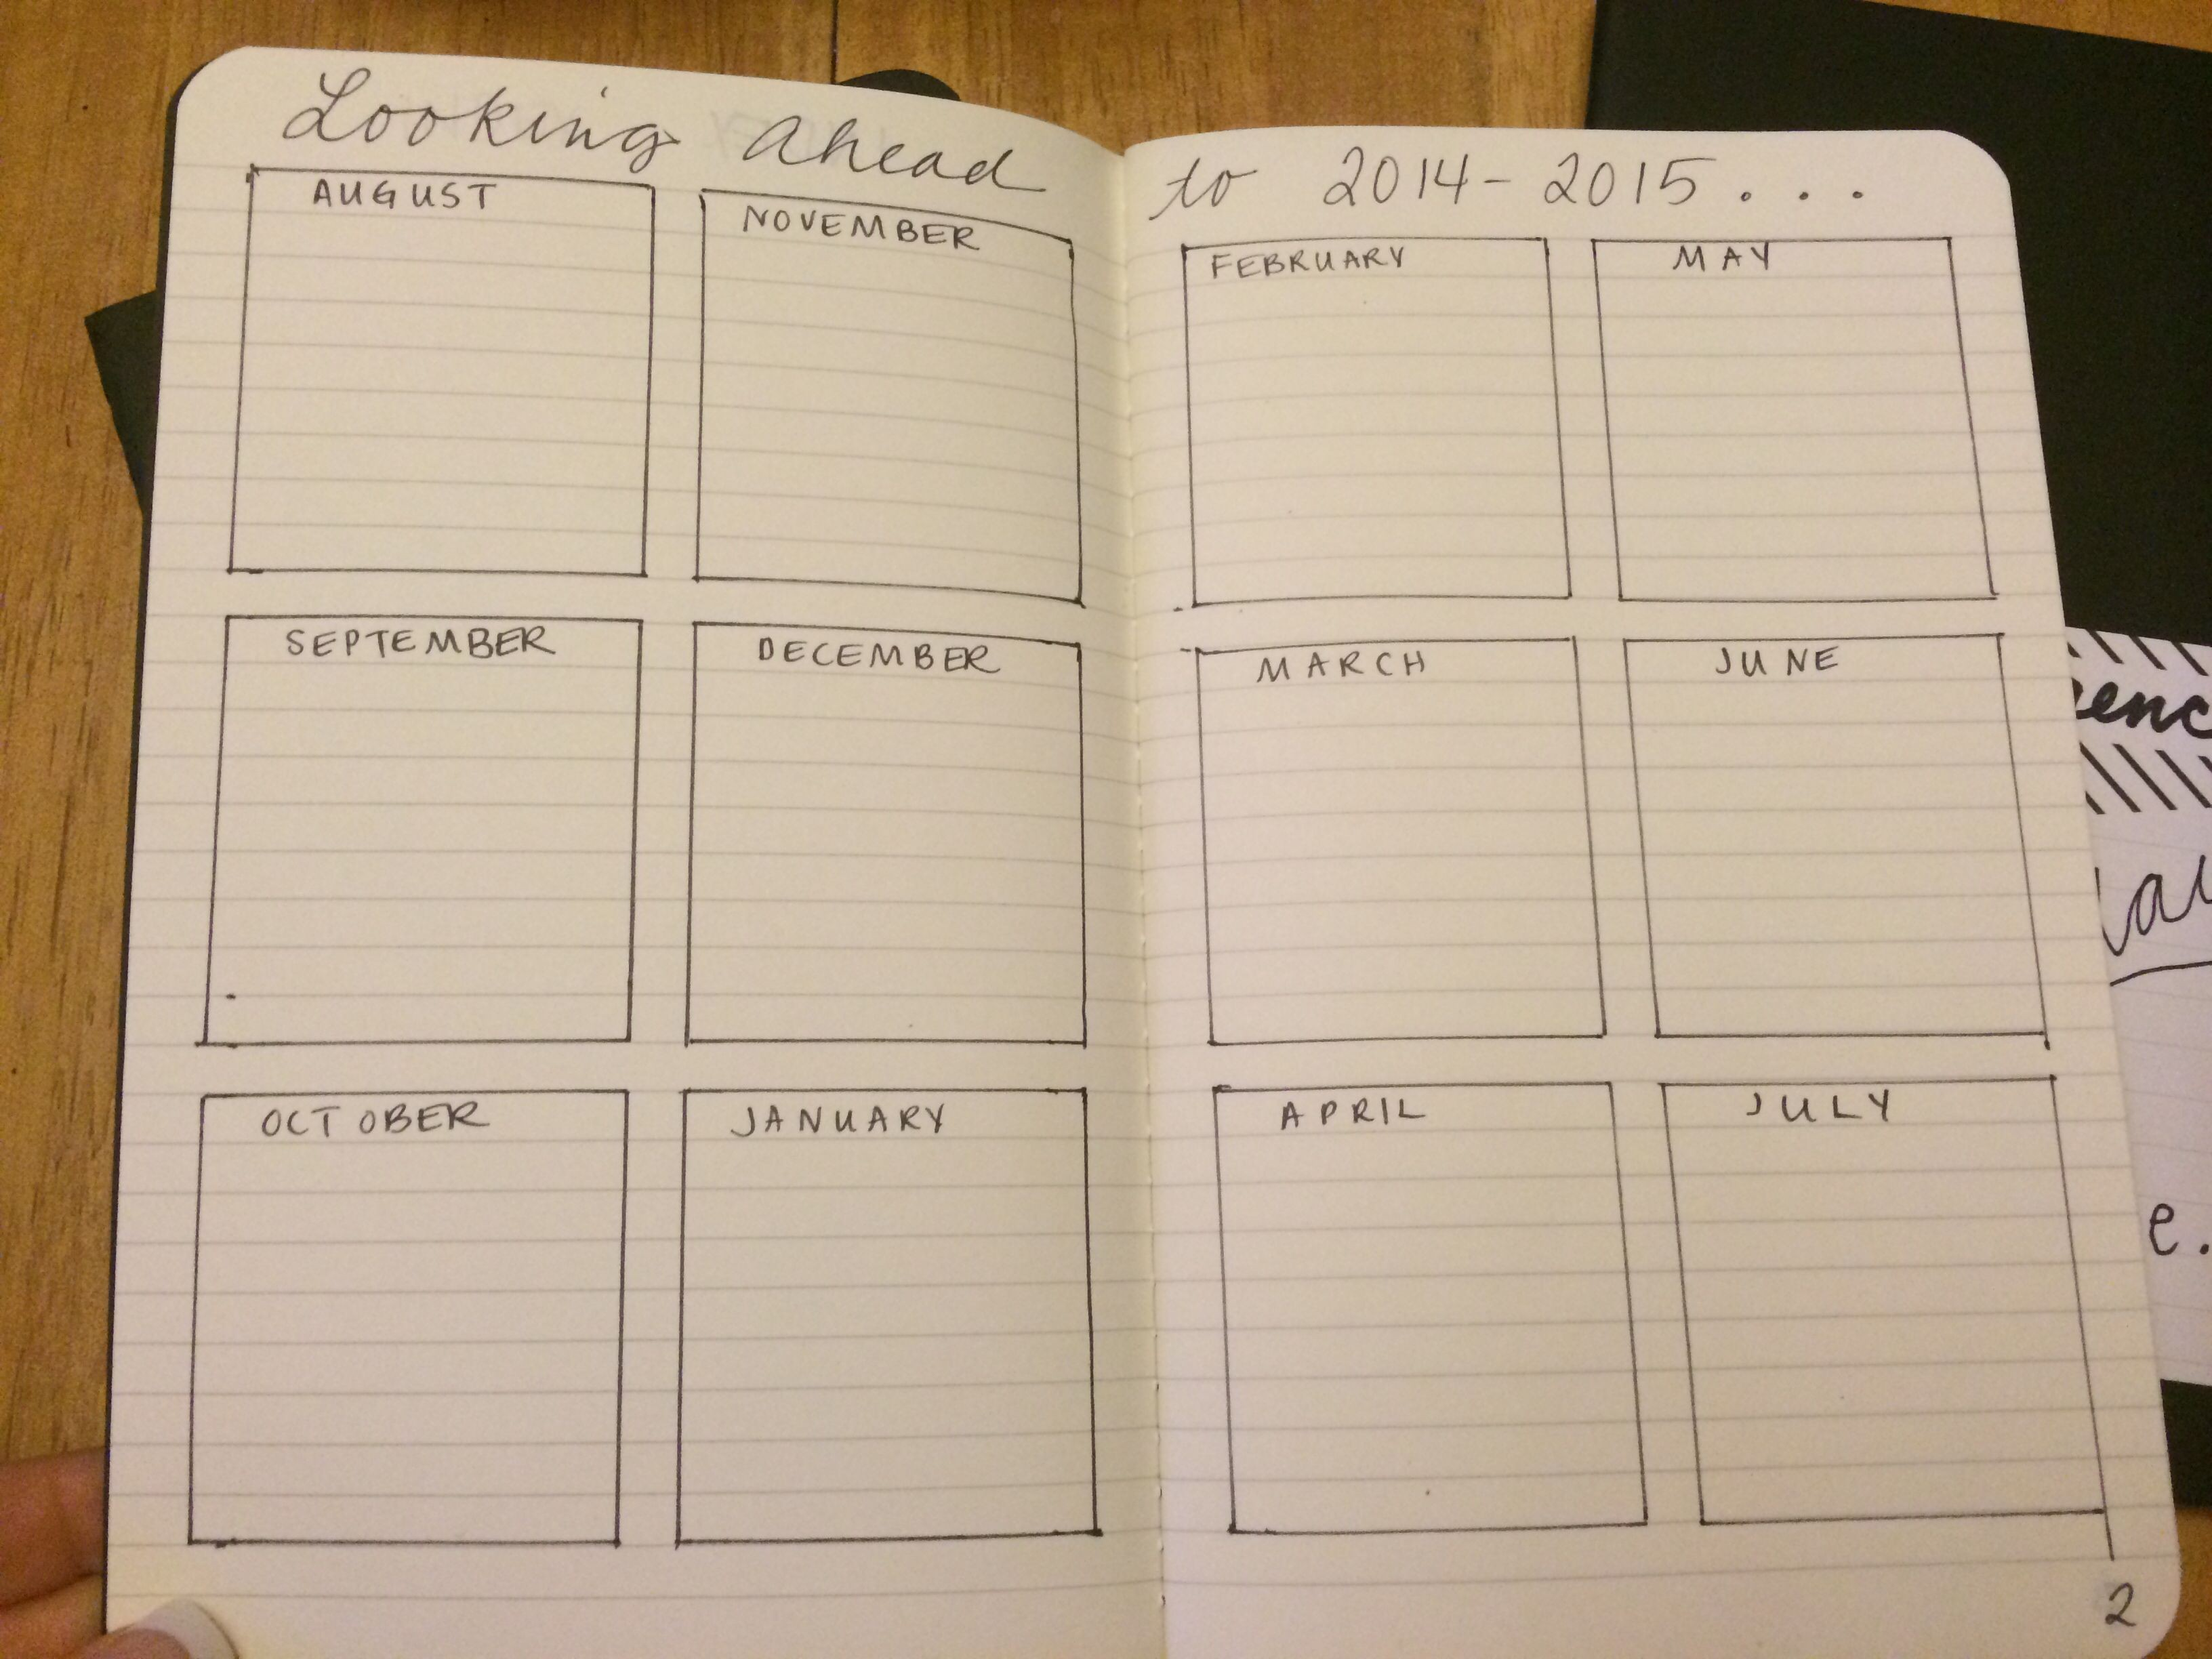 Monthly squares Bullet Journal Key Bullet Journal Tracker Bullet Journal Year At A Glance